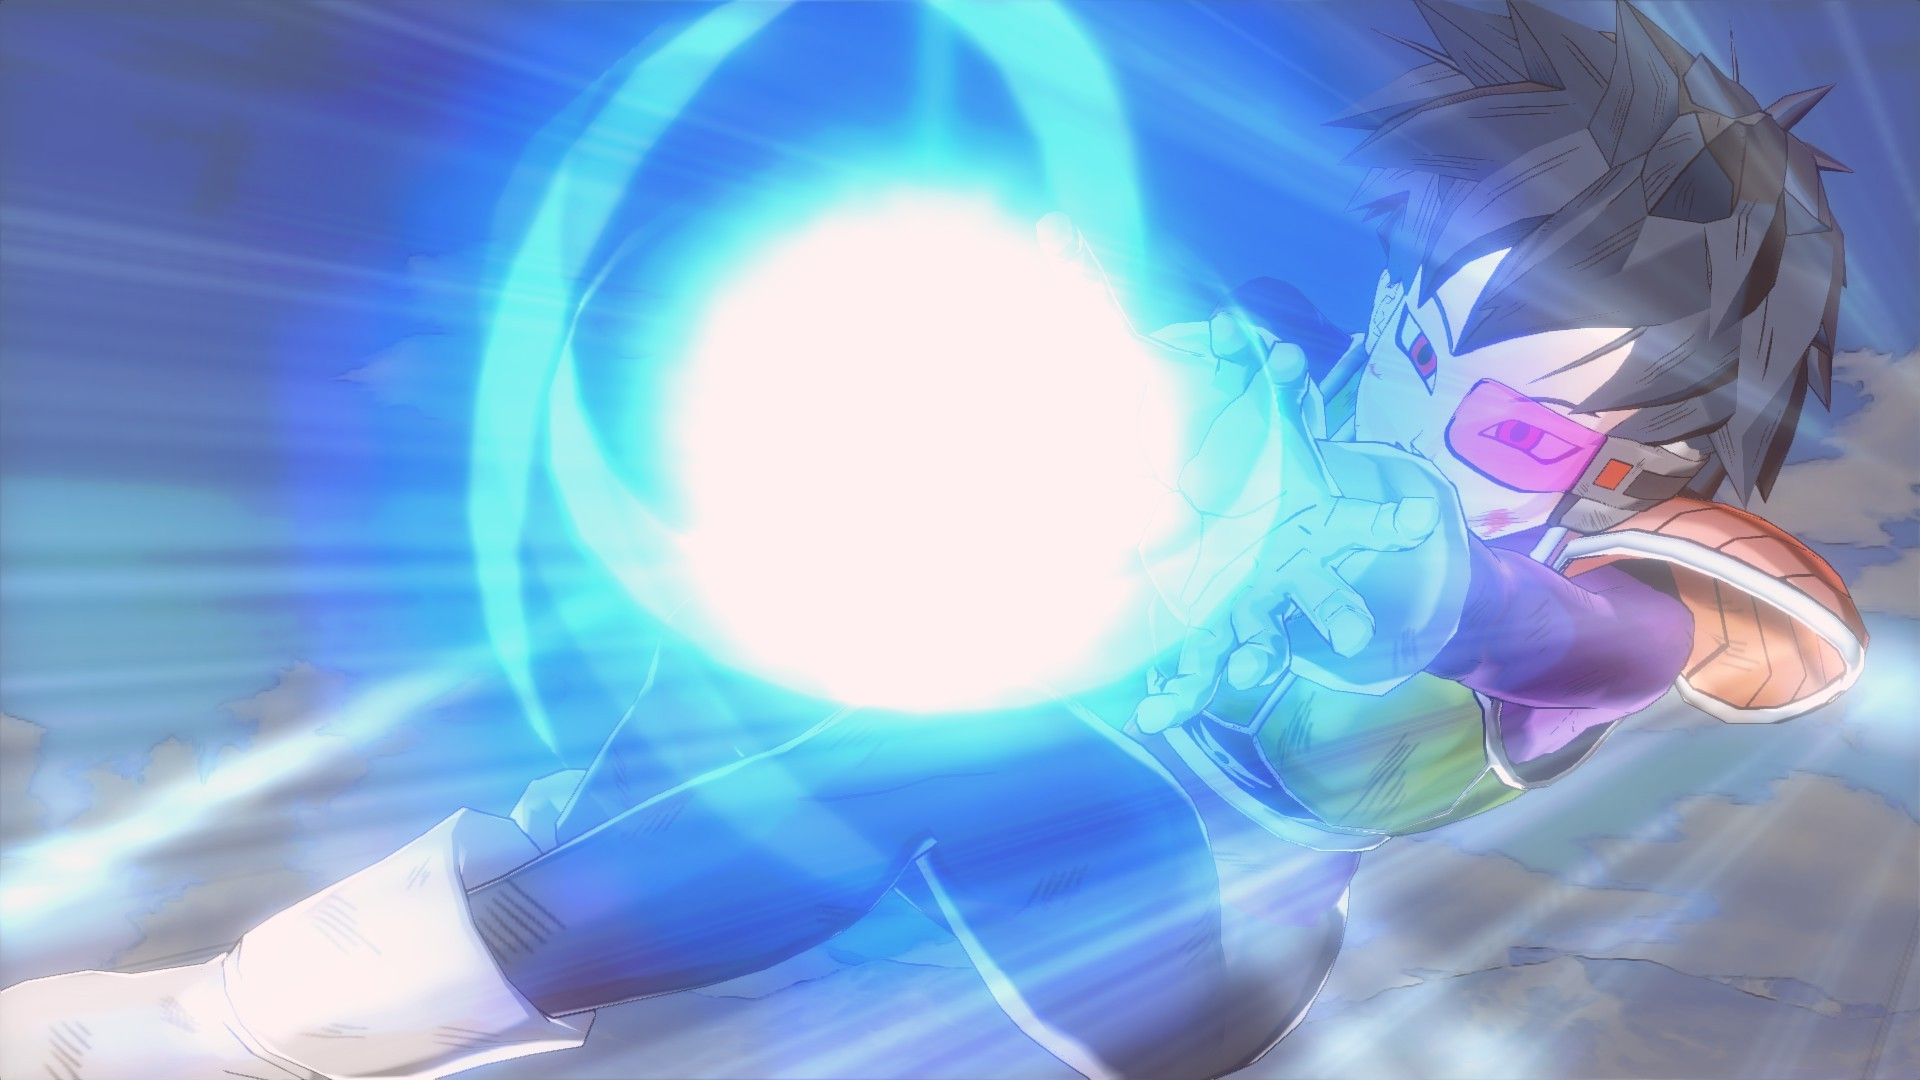 What does your character look like in Dragon Ball: Xenoverse? | NeoGAF